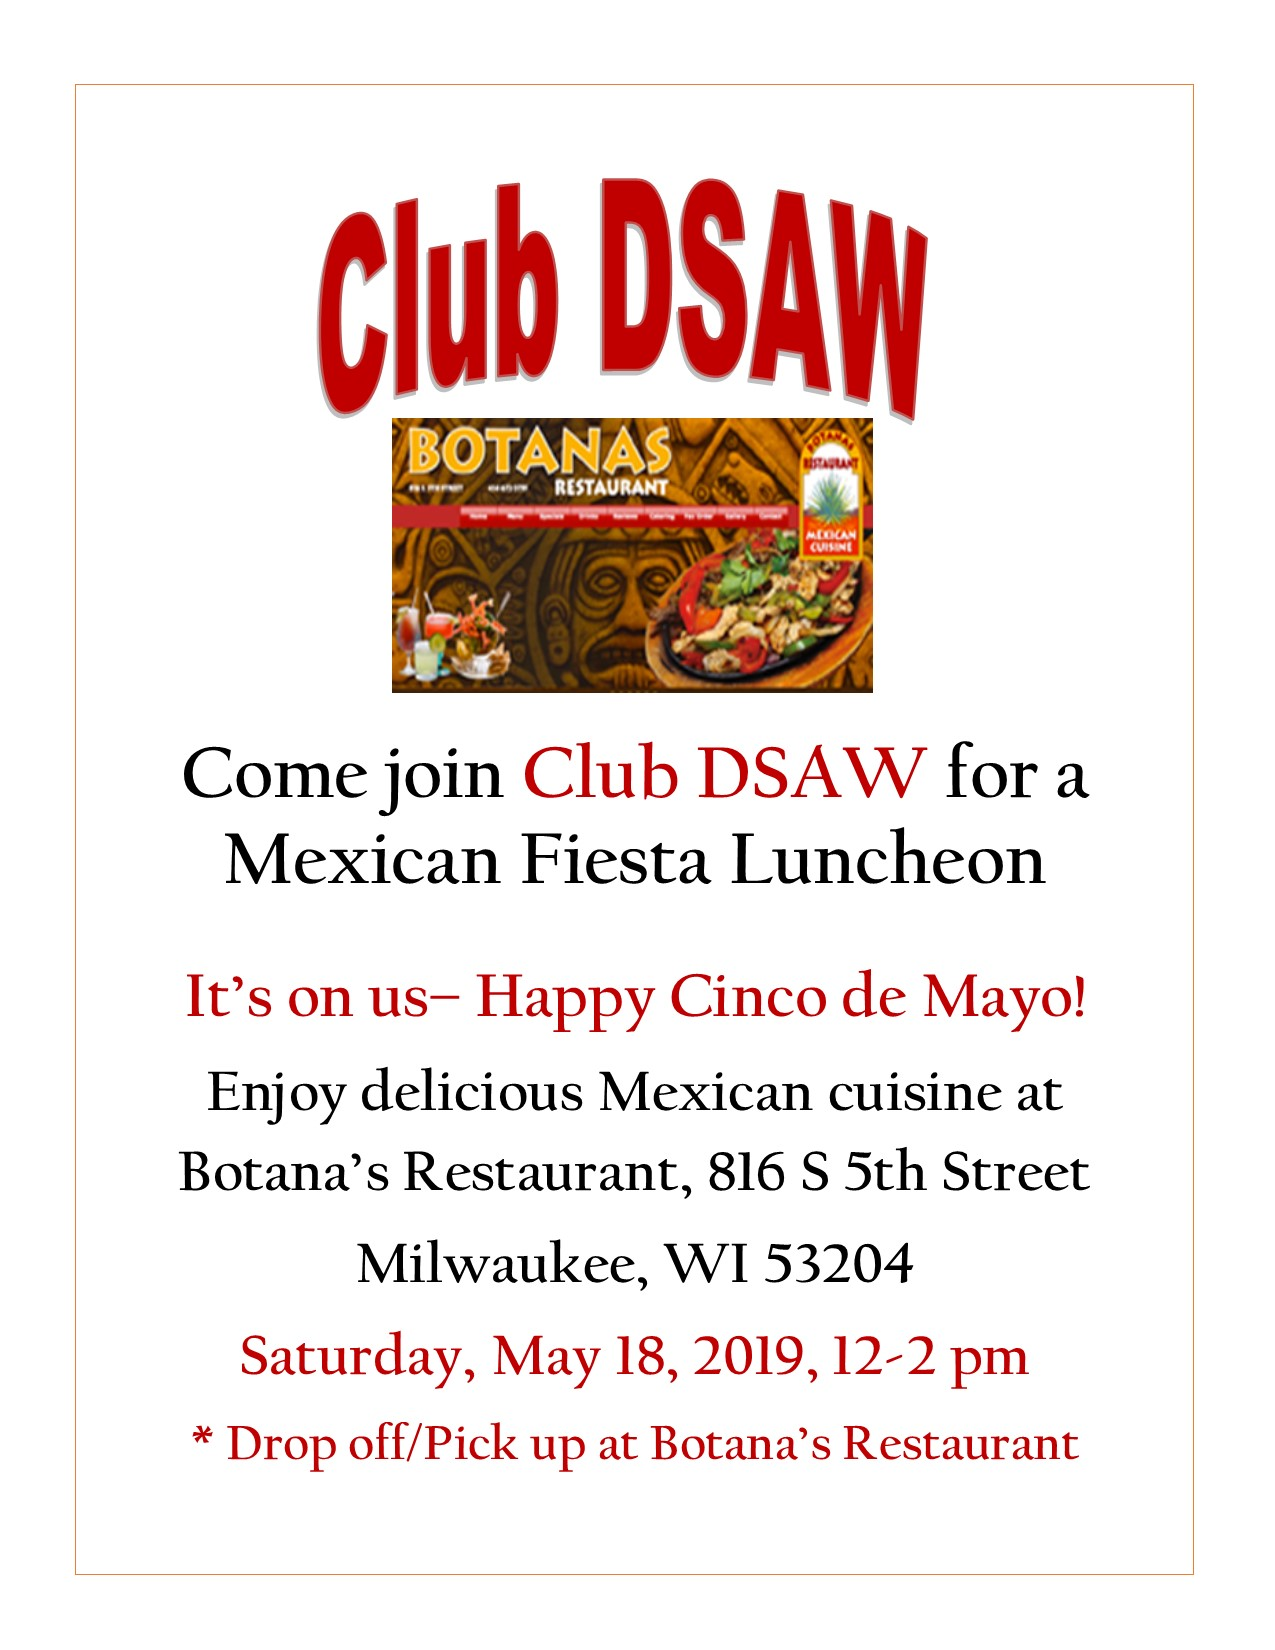 Club DSAW Mexican Fiesta Luncheon 5-18-19.jpg